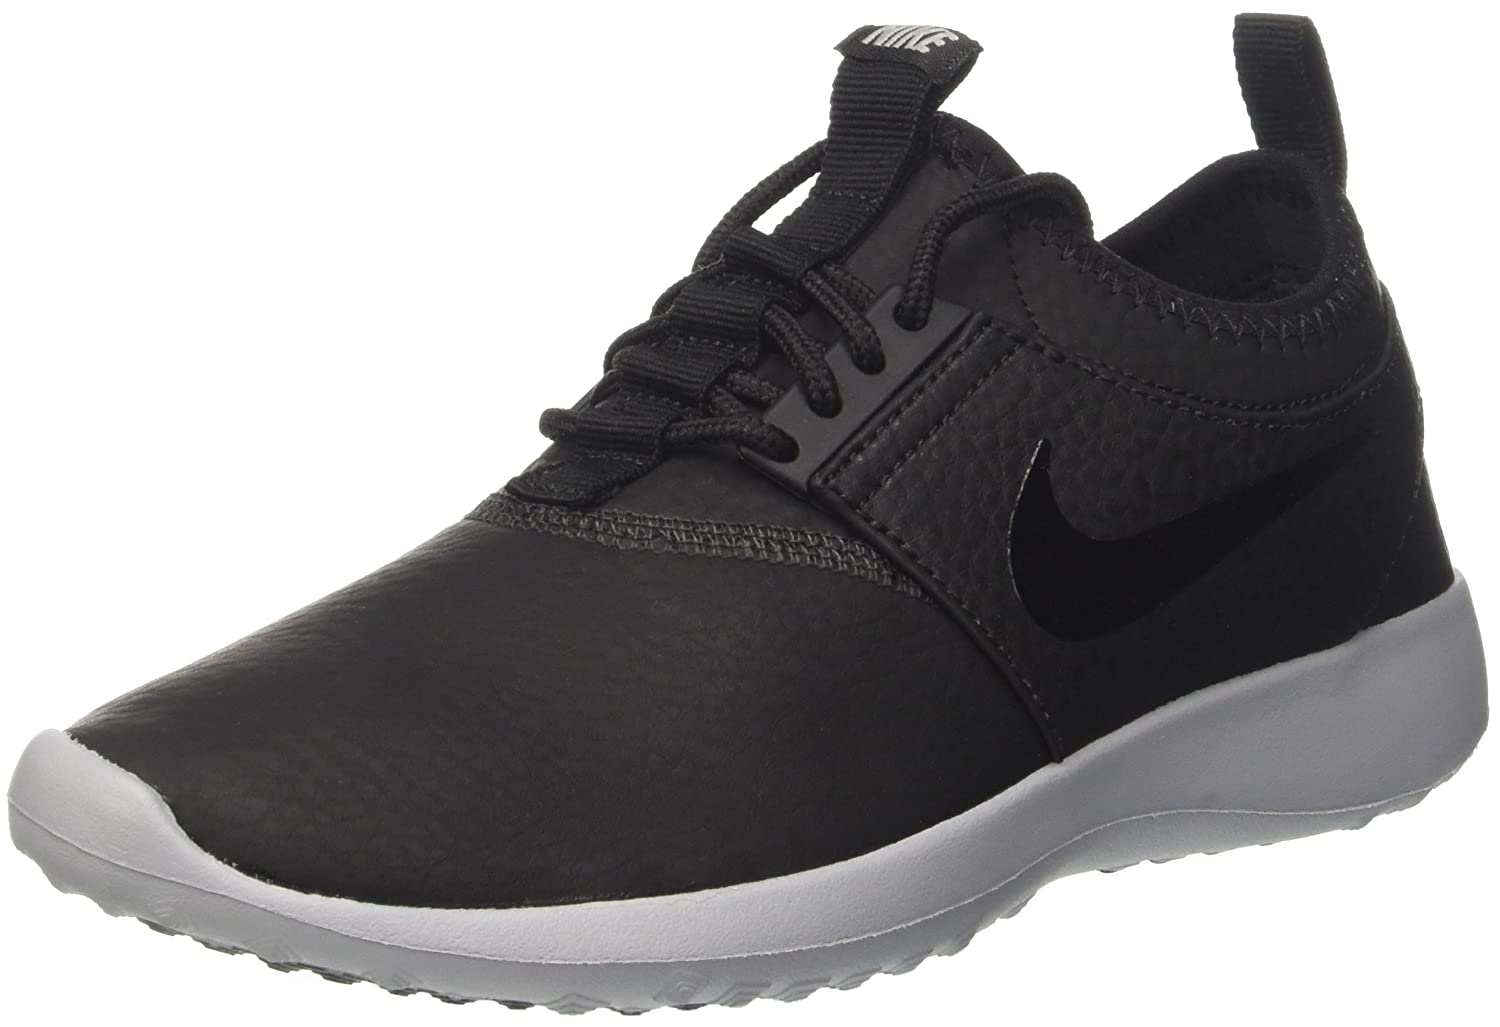 NIKE Women's Juvenate Premium B01M1DFE0E 5.5 B(M) US|Black